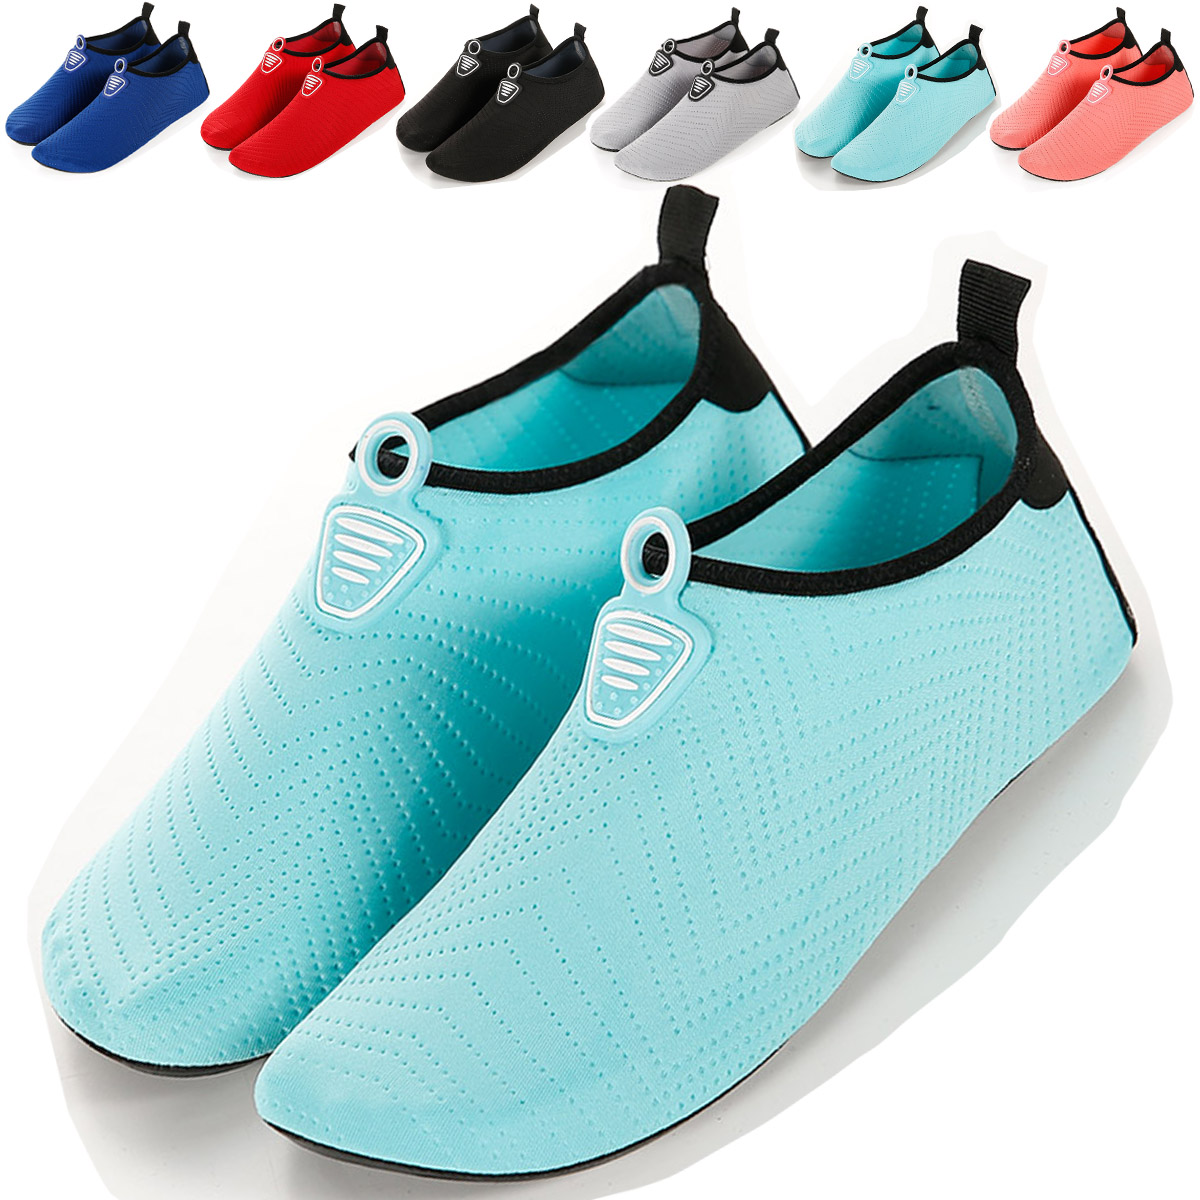 Water Shoes Men Swimming Sports Unisex Sneakers Aqua Seaside Beach Shoes Surfing Slippers Upstream Light Athletic Footwear Homme